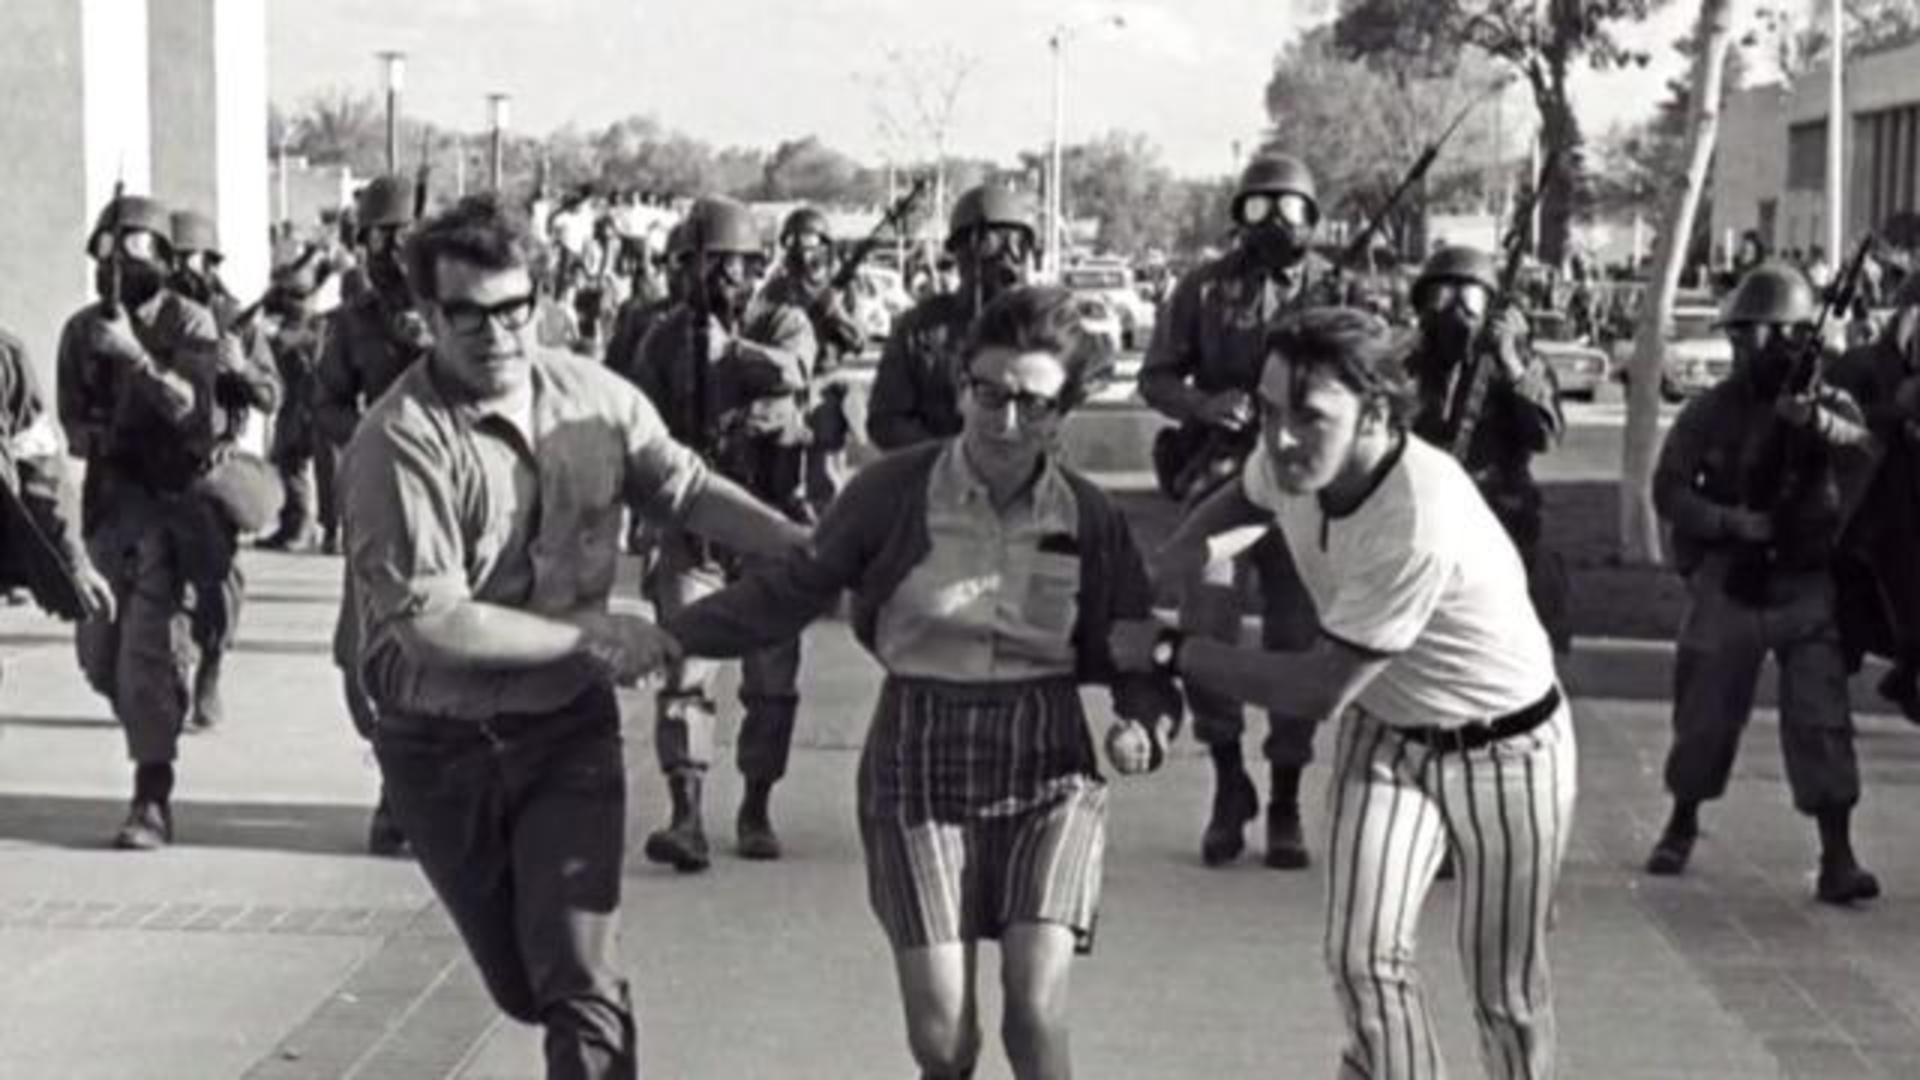 Former Kent State students speak out, 50 years after deadly ...